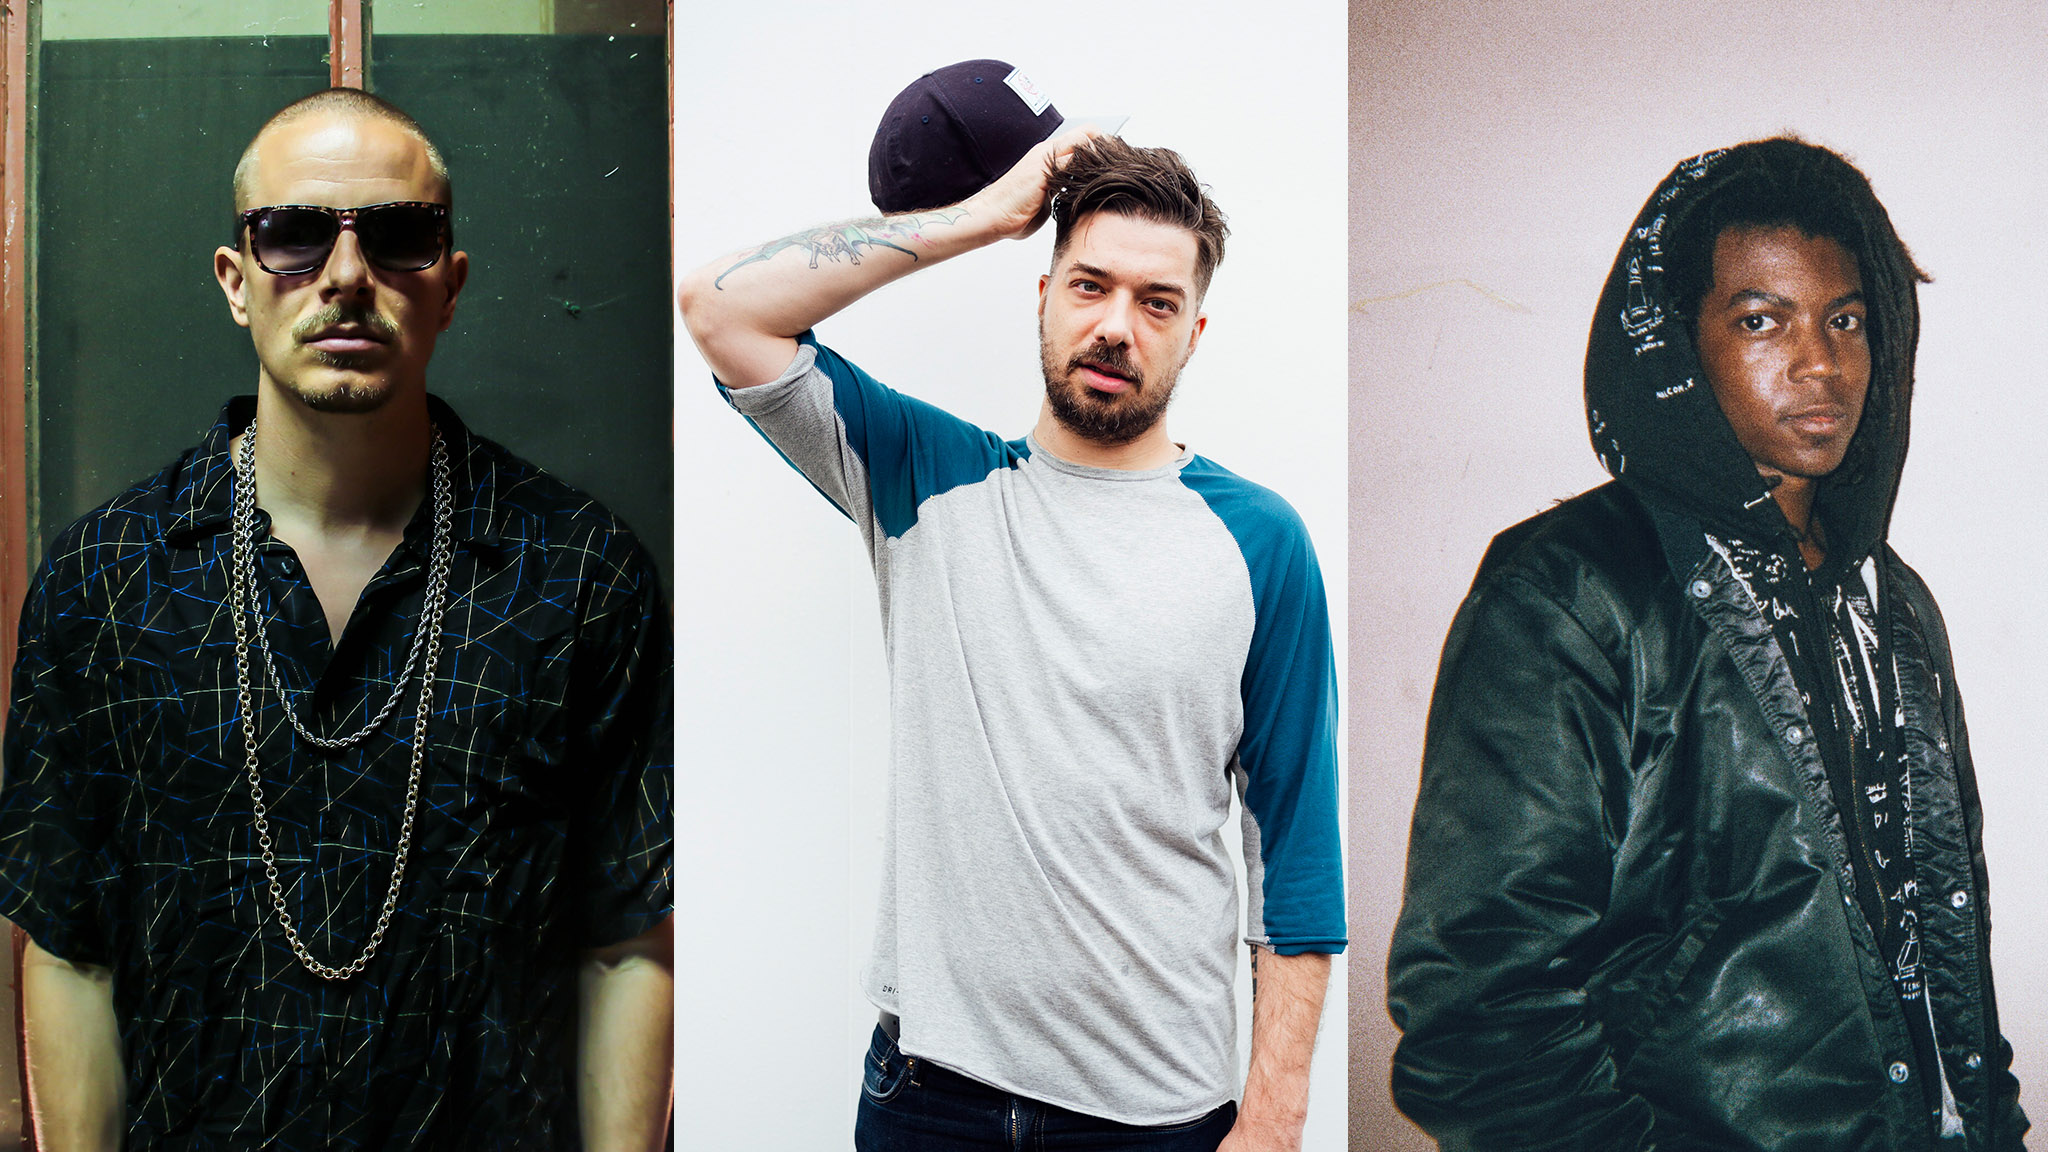 From left to right: Prof, Aesop Rock and deM atlaS are slated to perform at Minneapolis' famed First Avenue venue to kick off X Games Minneapolis 2017.